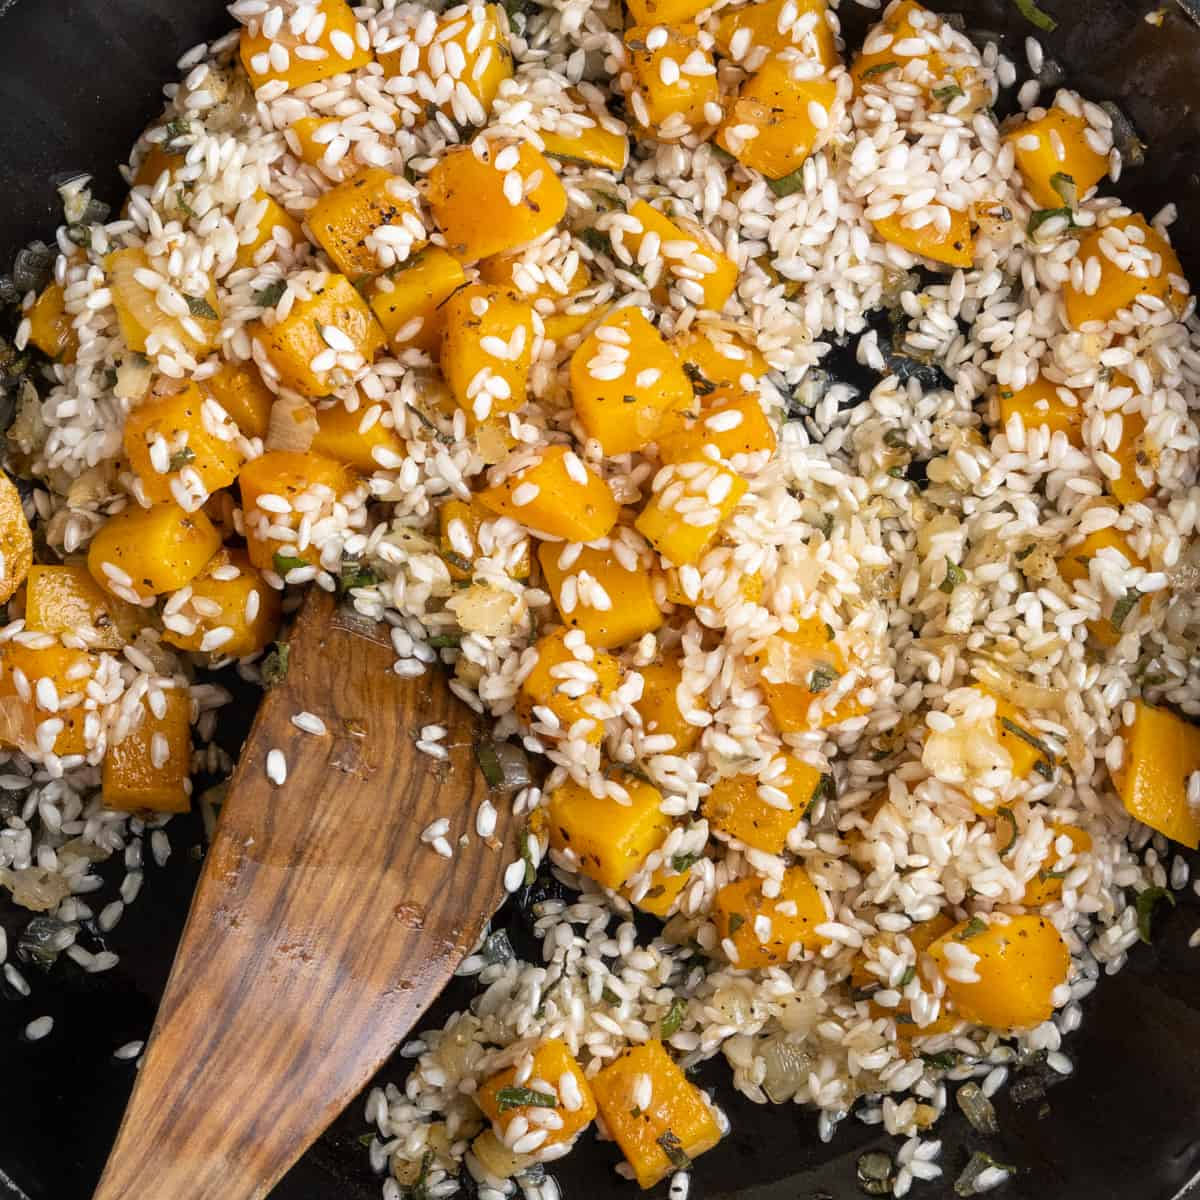 A spatula stirs the rice into the butternut squash and onion mixture.